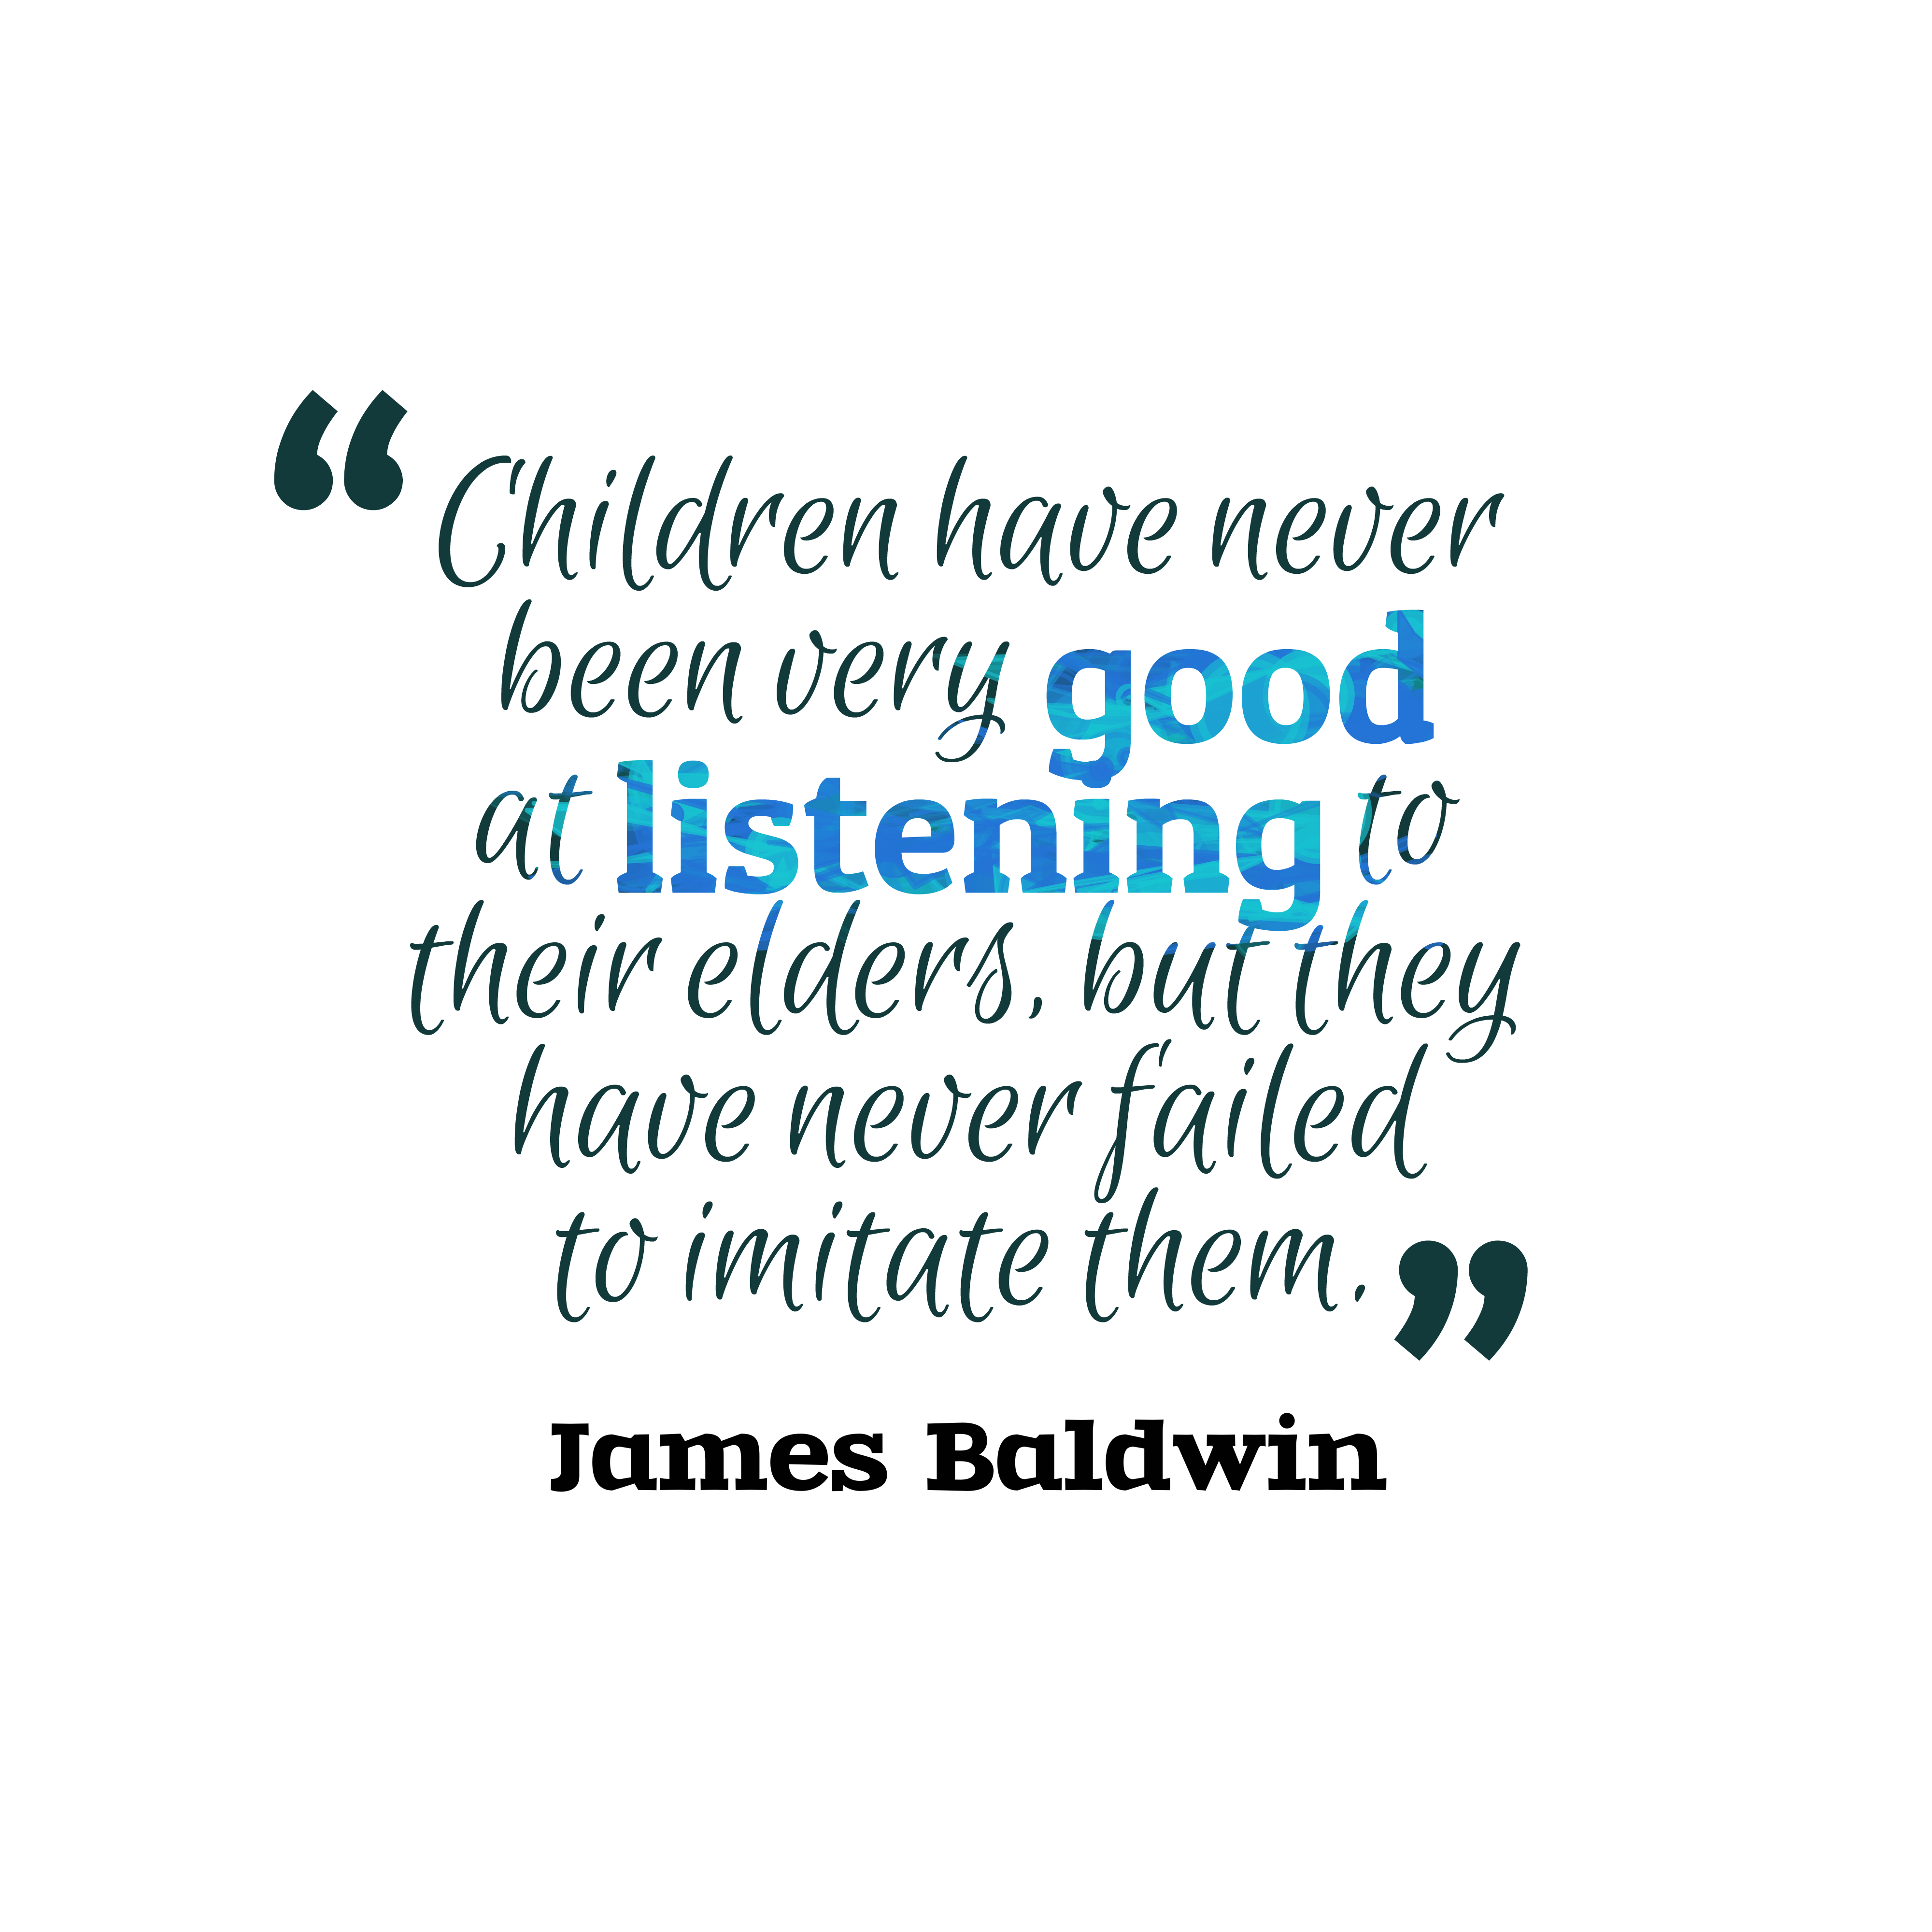 James Baldwin Quote About Children